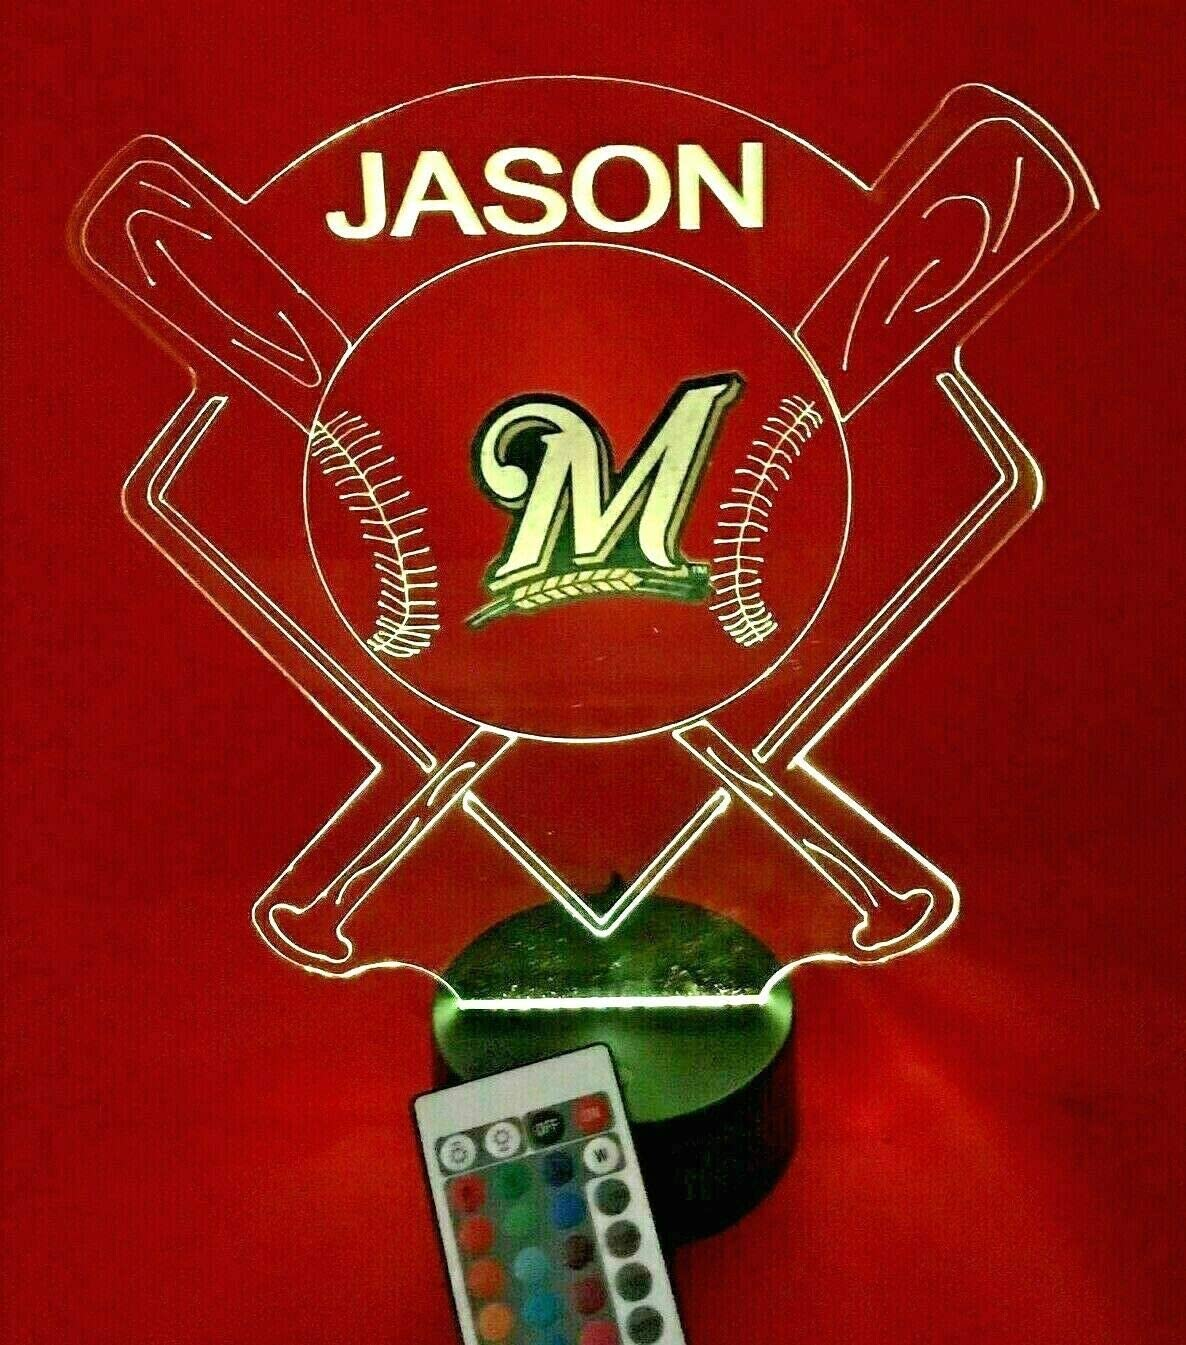 Baseball Night Light Up Lamp LED Lamp Personalized Handmade Stadium with Bats Free Personalization and Remote, Men Man Boys Girls Sports Gift, 16 Color Options, and Variations! (MKE Brewers)